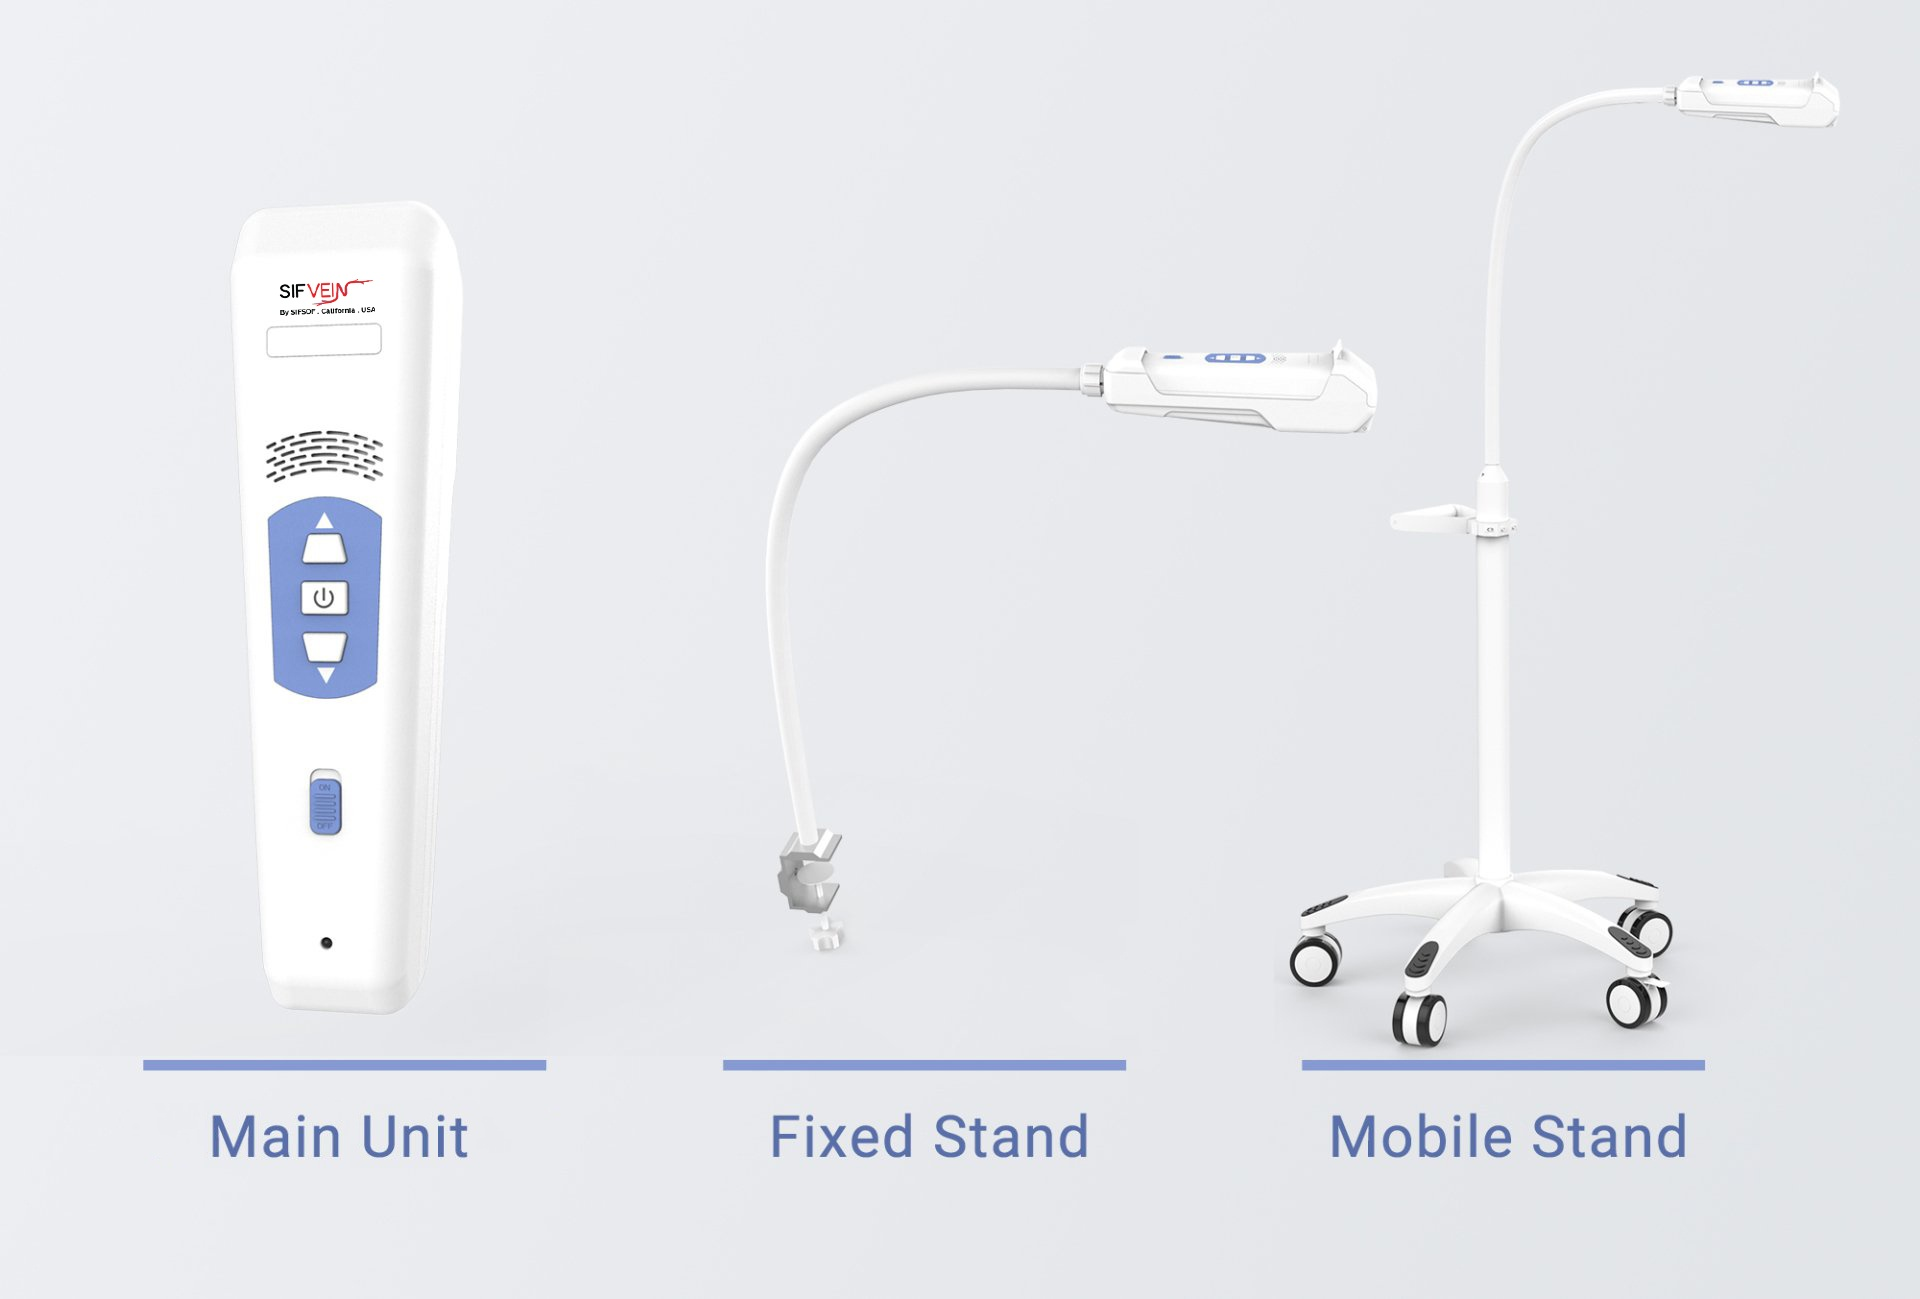 SIFVEIN-7.1 MOBILE STAND OR FIXED STAND OPTIONAL